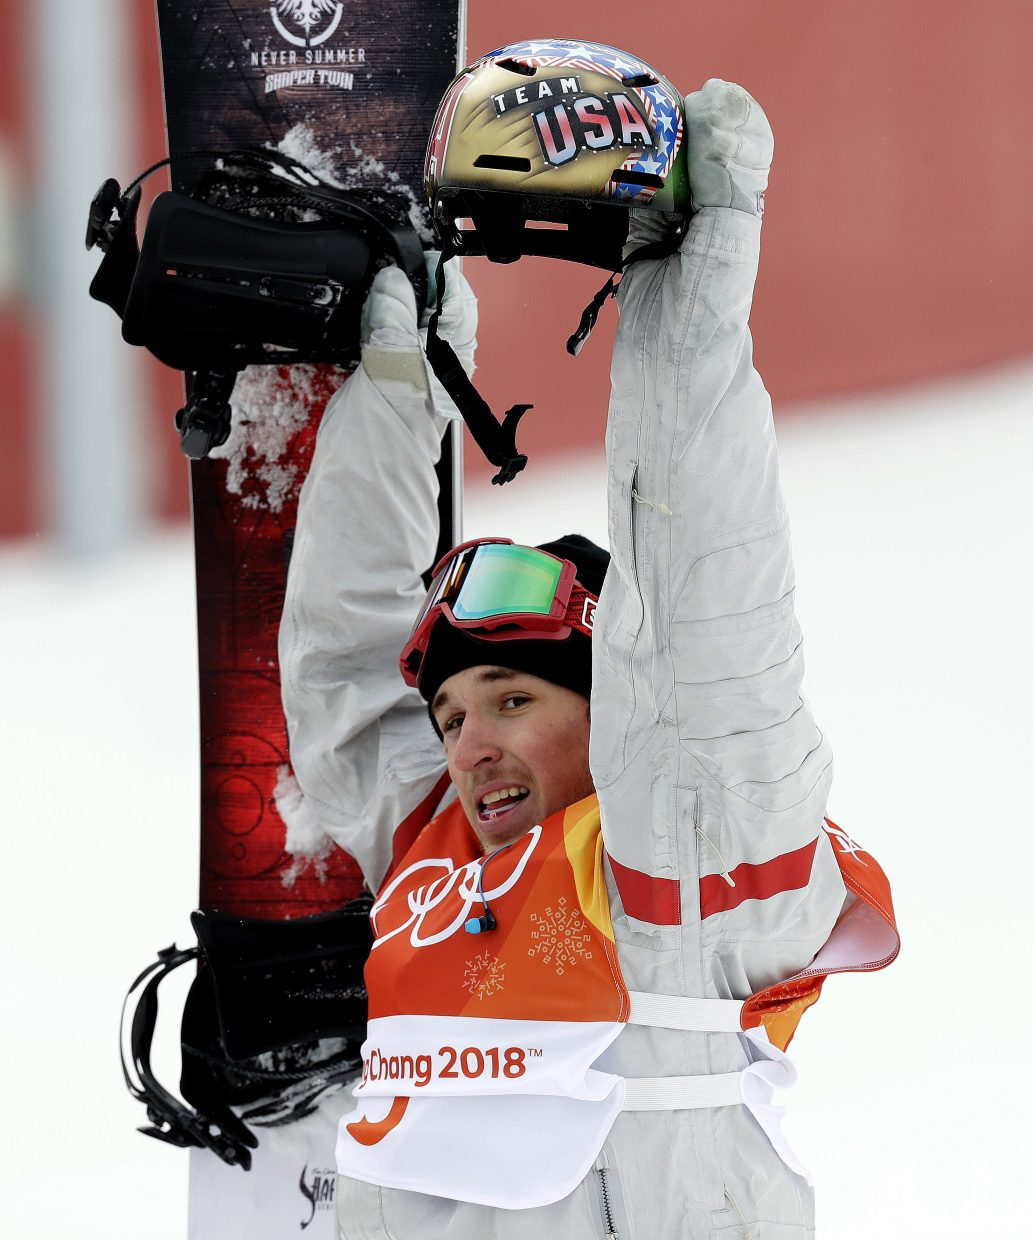 Chris Corning, of the United States, waves to the crowd after his run during the men's slopestyle qualifying at Phoenix Snow Park at the 2018 Winter Olympics in Pyeongchang, South Korea, Saturday, Feb. 10, 2018. (AP Photo/Kin Cheung)